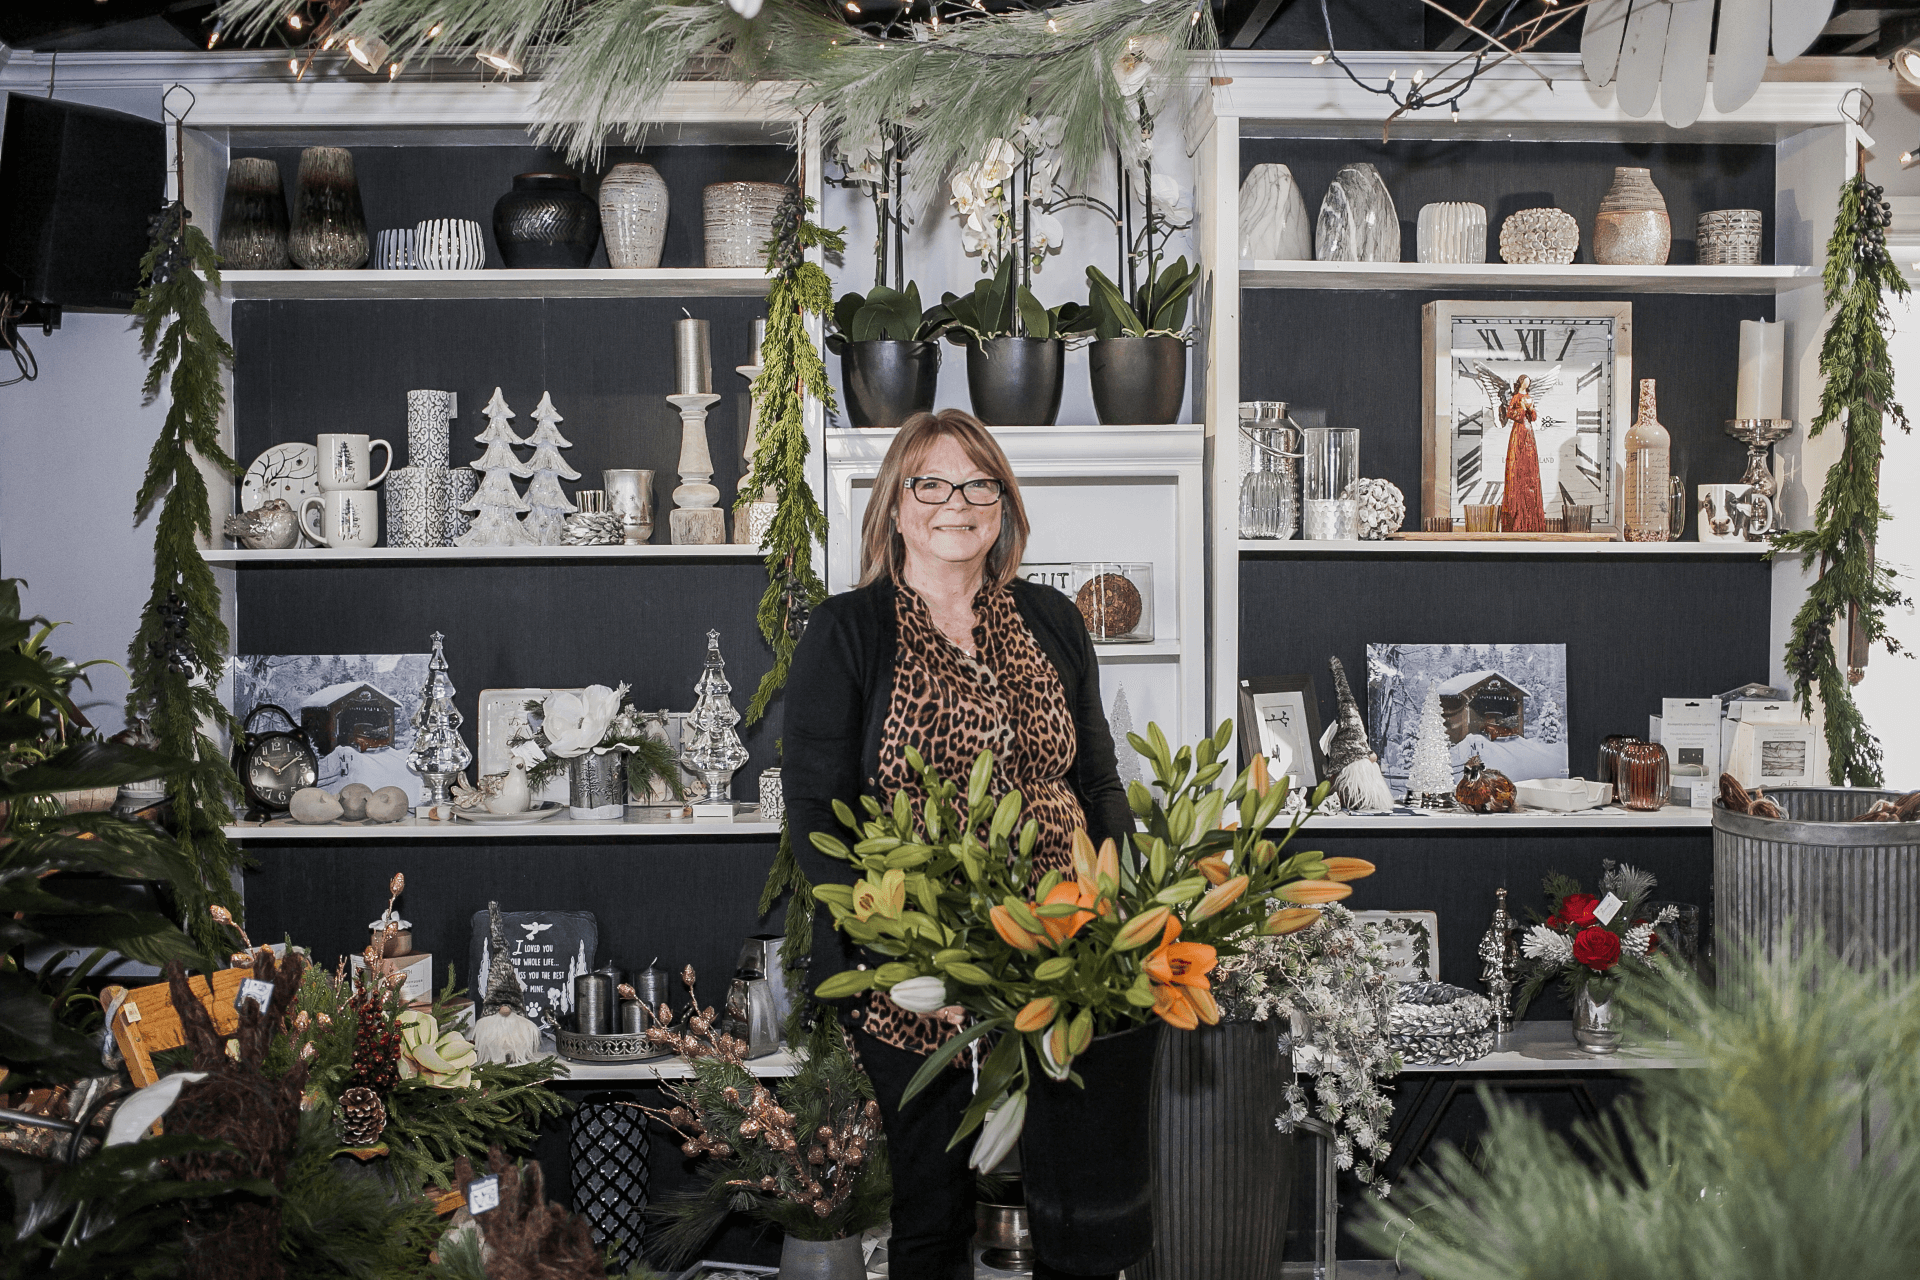 owner standing in front of seasonal decor